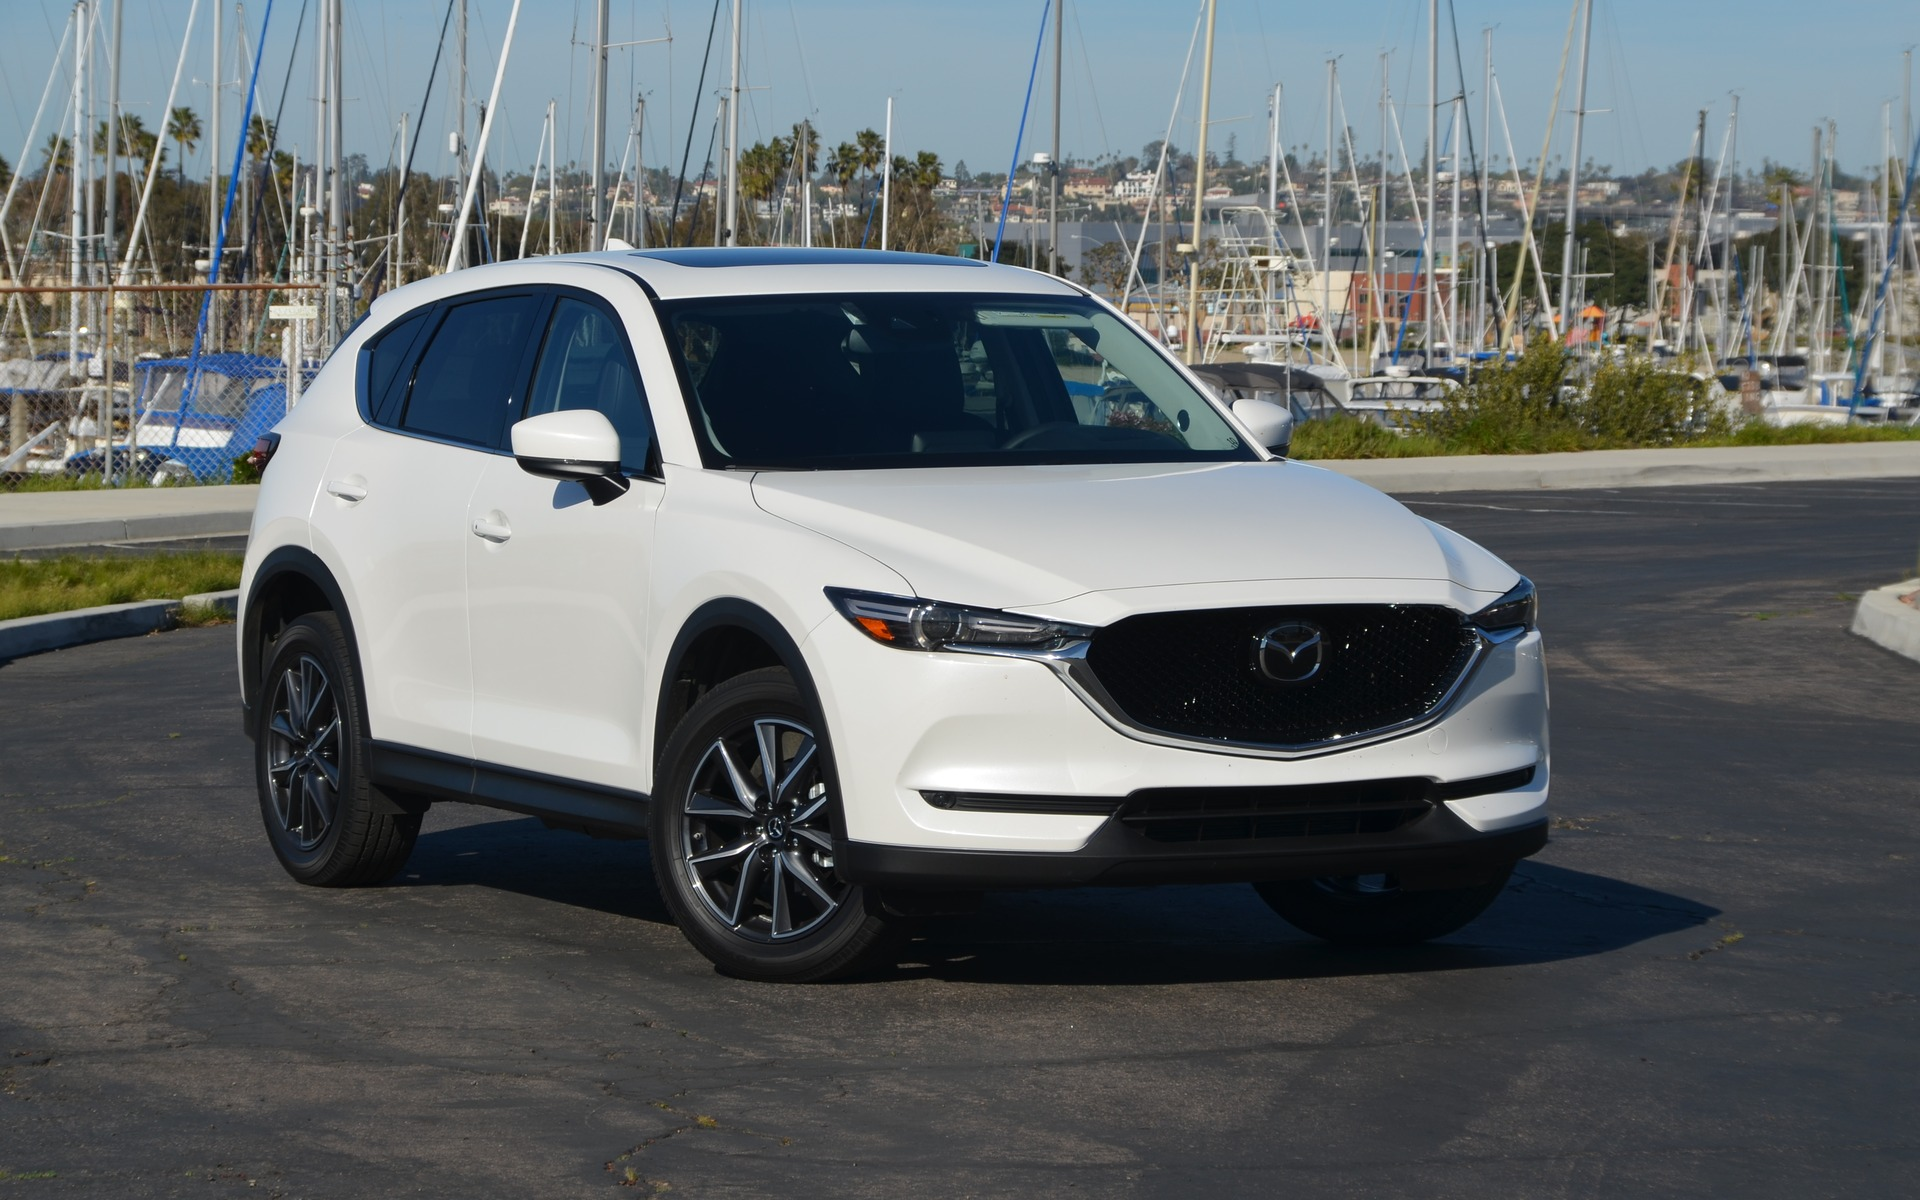 2017 Mazda Cx 5 Photos 1 8 The Car Guide